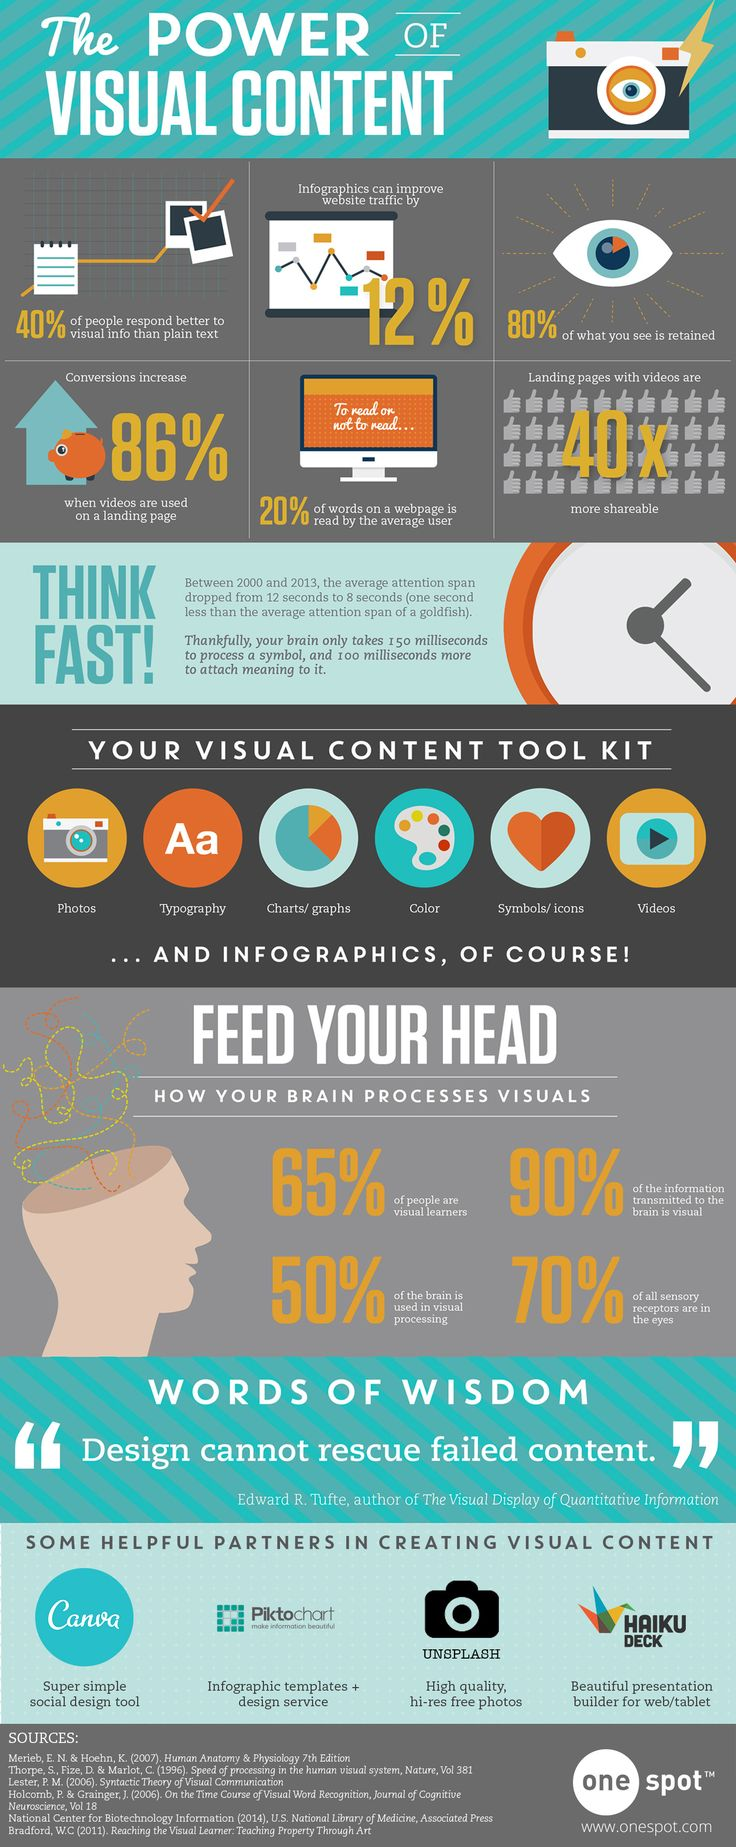 How can visuals improve your marketing? ==> The Power of Visual Content - #infographic